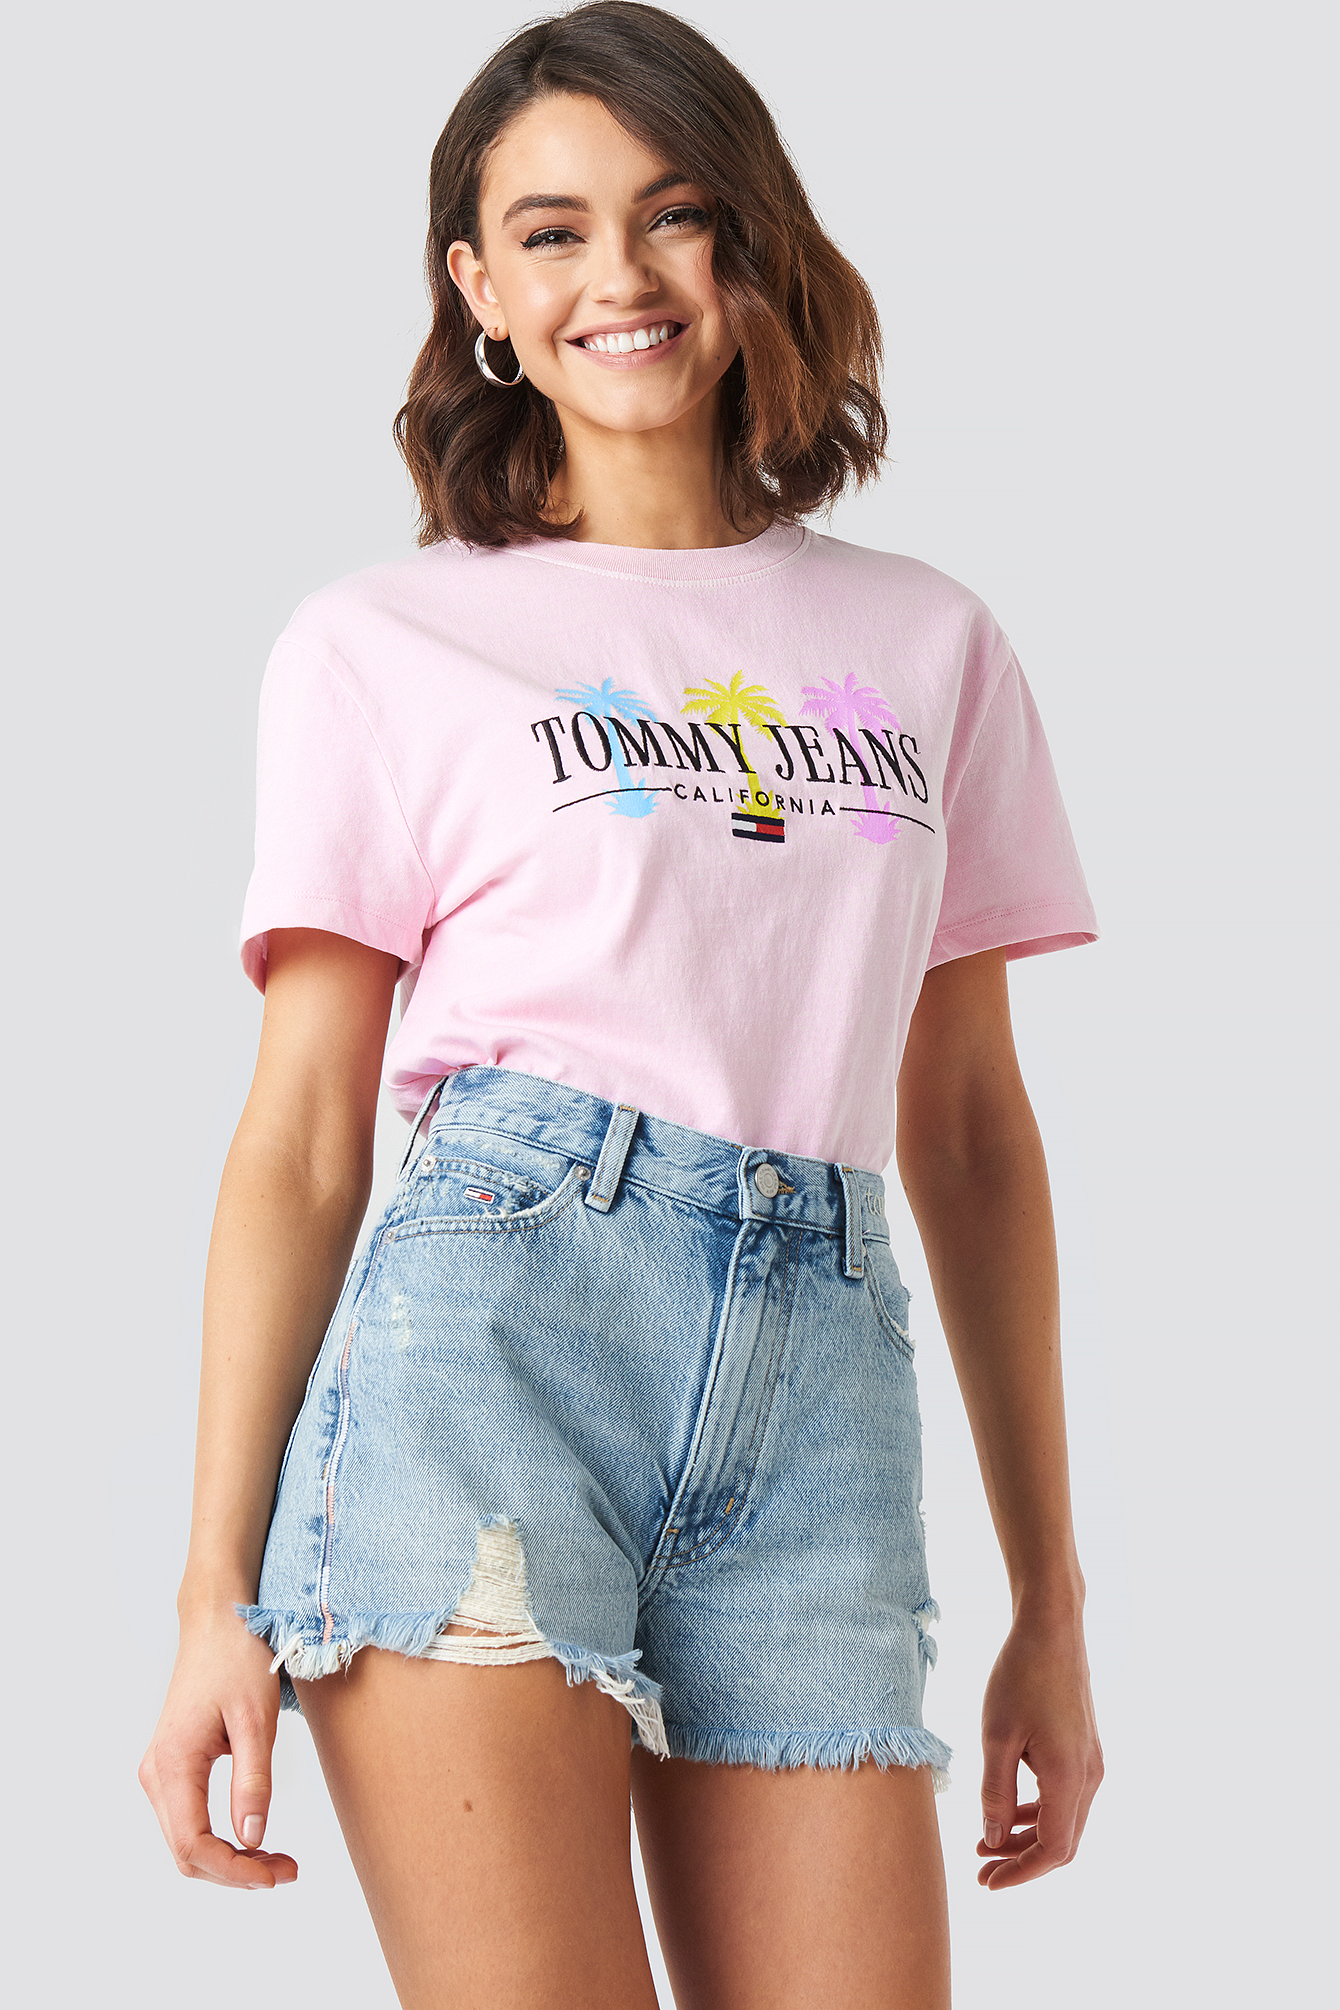 Tommy Jeans Summer Palm Tree Tee NA-KD.COM